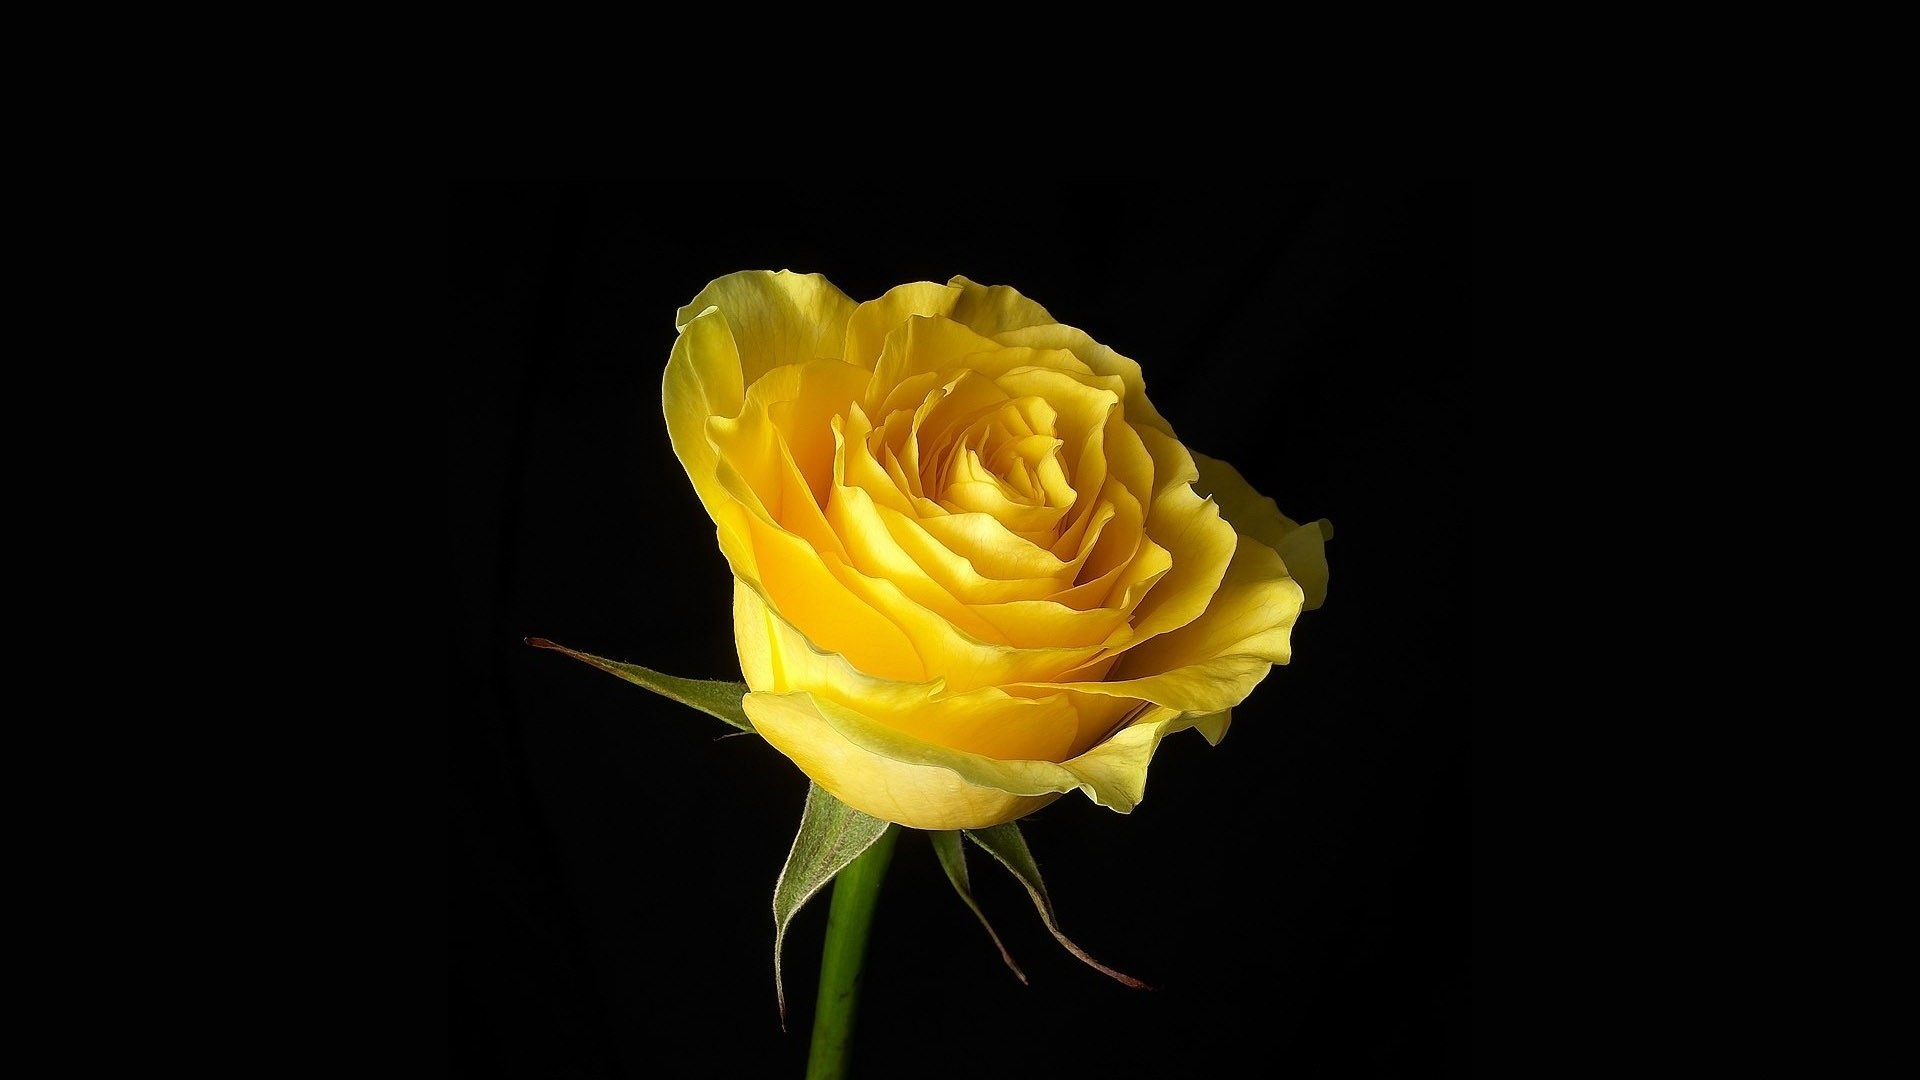 Backgrounds for Gt Beautiful Yellow Rose Wallpaper 1920x1080px